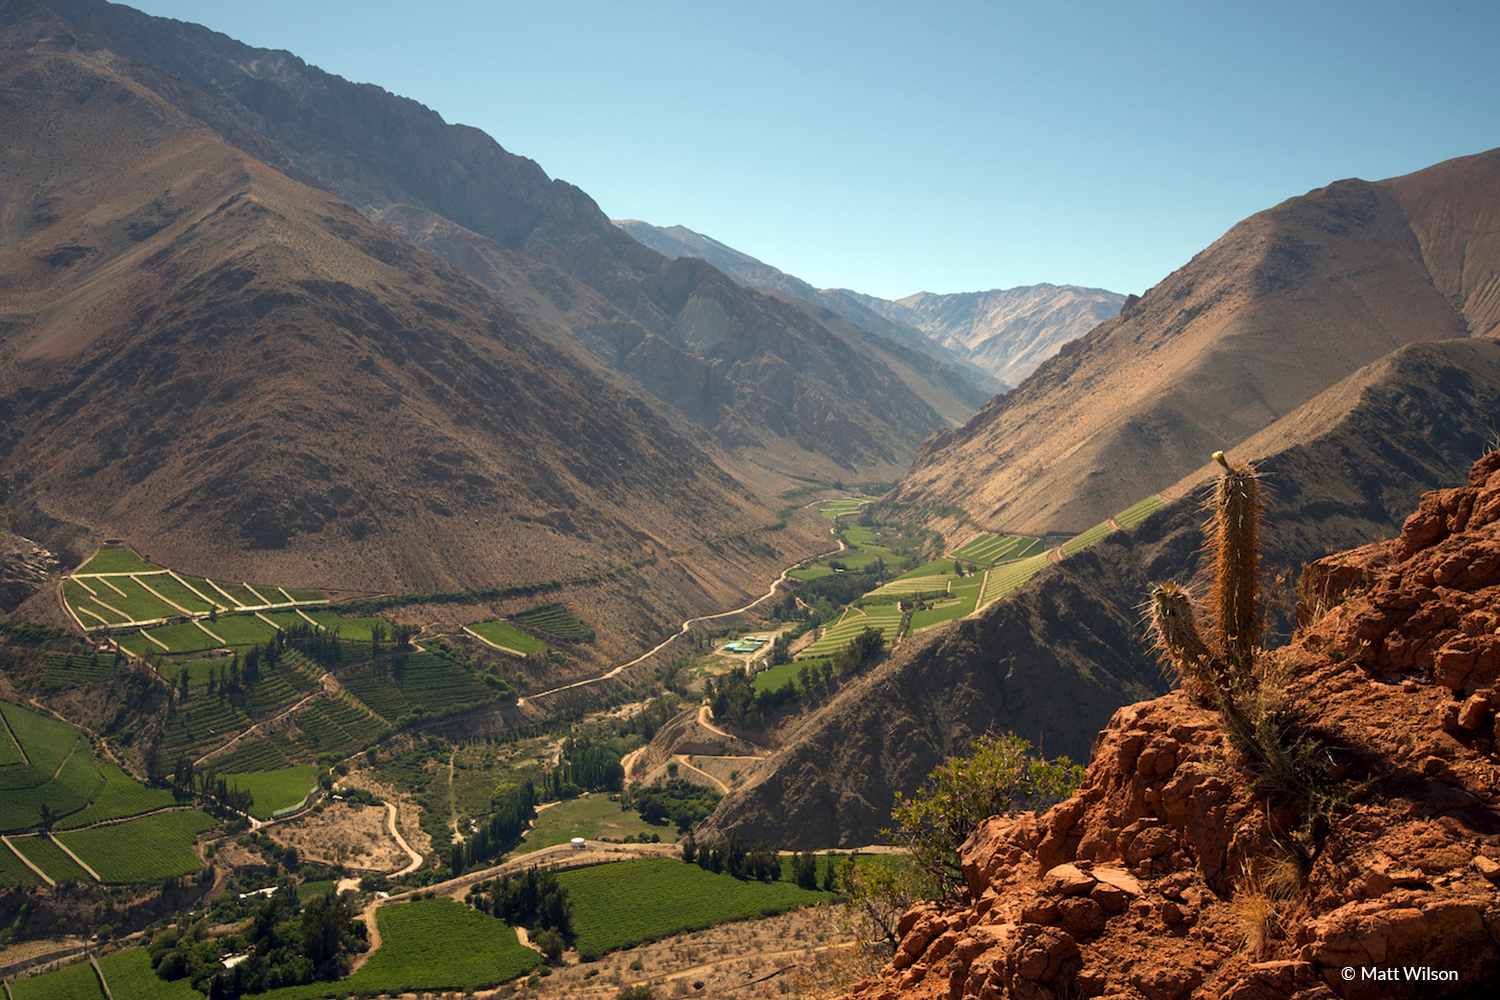 Awesome view of Elqui Valley in Atacama Desert, Chile